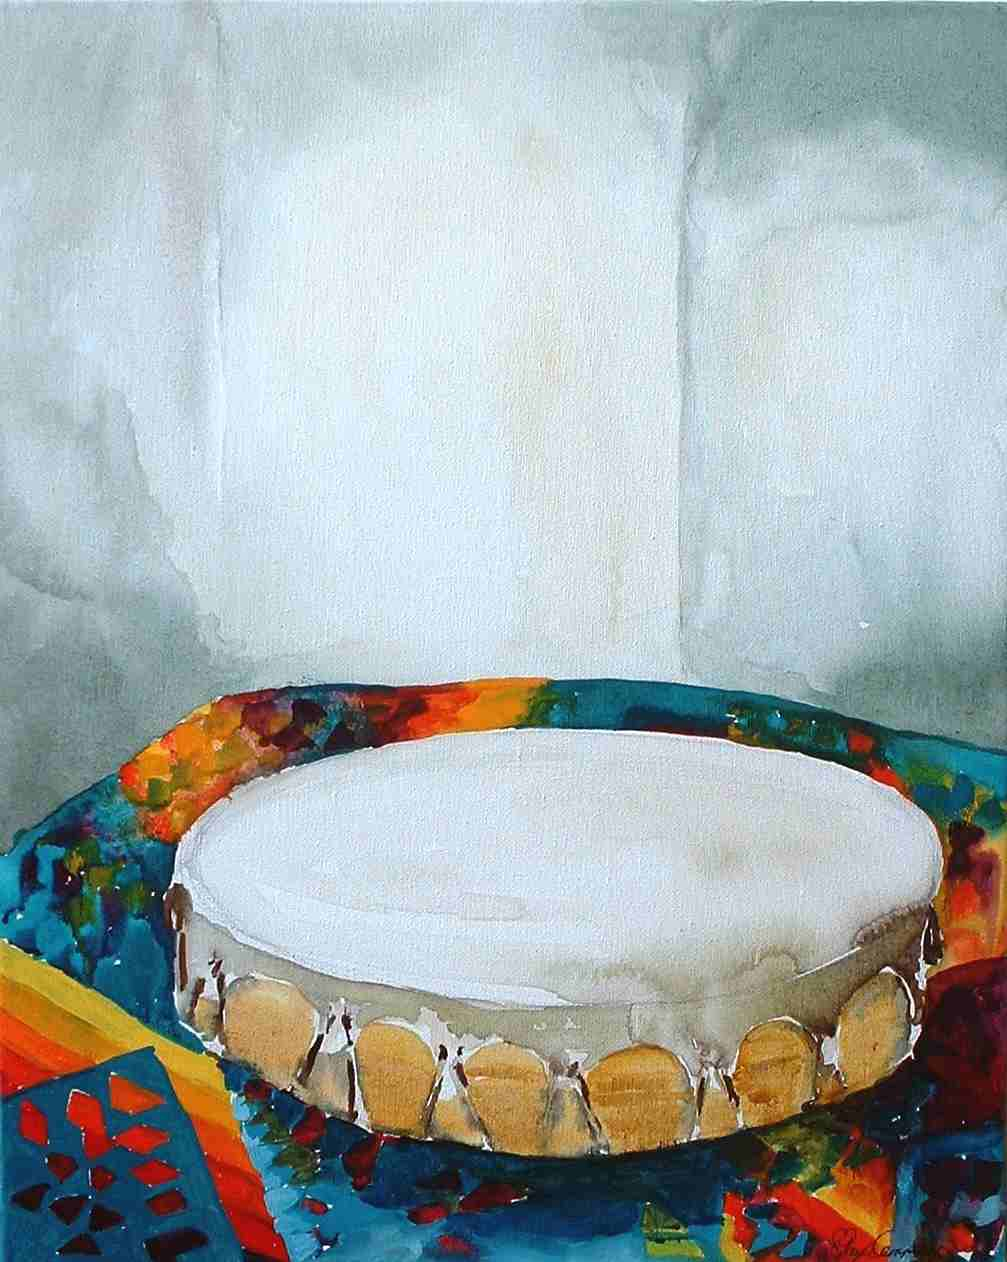 Sold - Grandmother's Drum